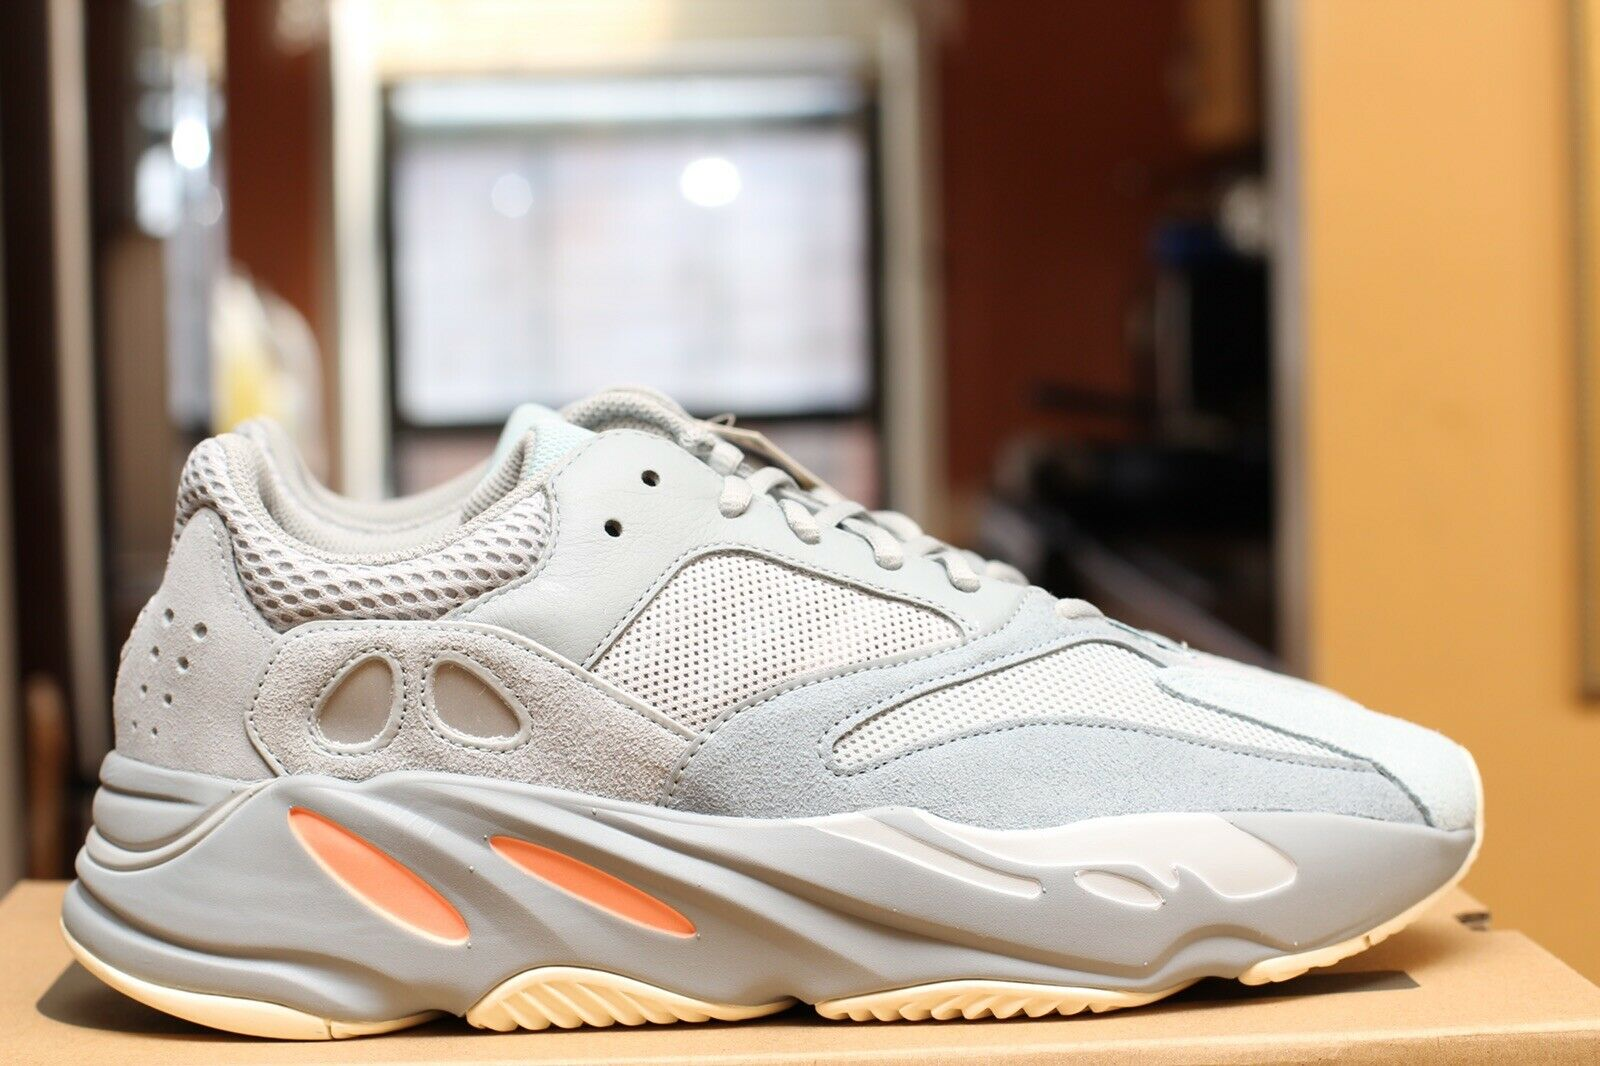 1dcd85fa754d3 ADIDAS YEEZY BOOST 700 700 700 INERTI SIZE 10.5 DS 100% AUTHENTIC EG7597  KITH REC